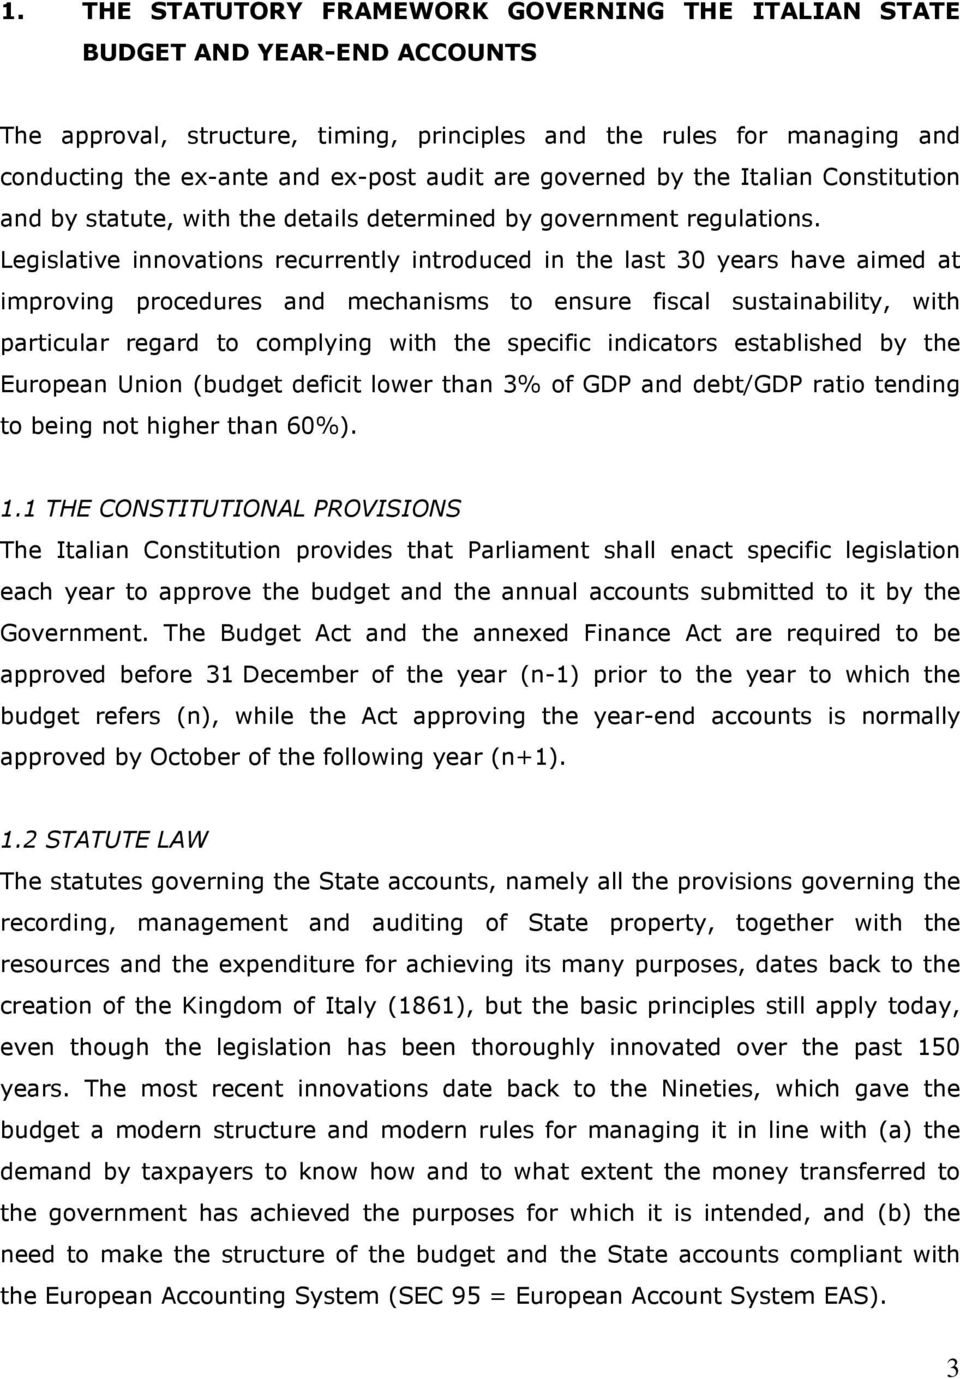 Legislative innovations recurrently introduced in the last 30 years have aimed at improving procedures and mechanisms to ensure fiscal sustainability, with particular regard to complying with the